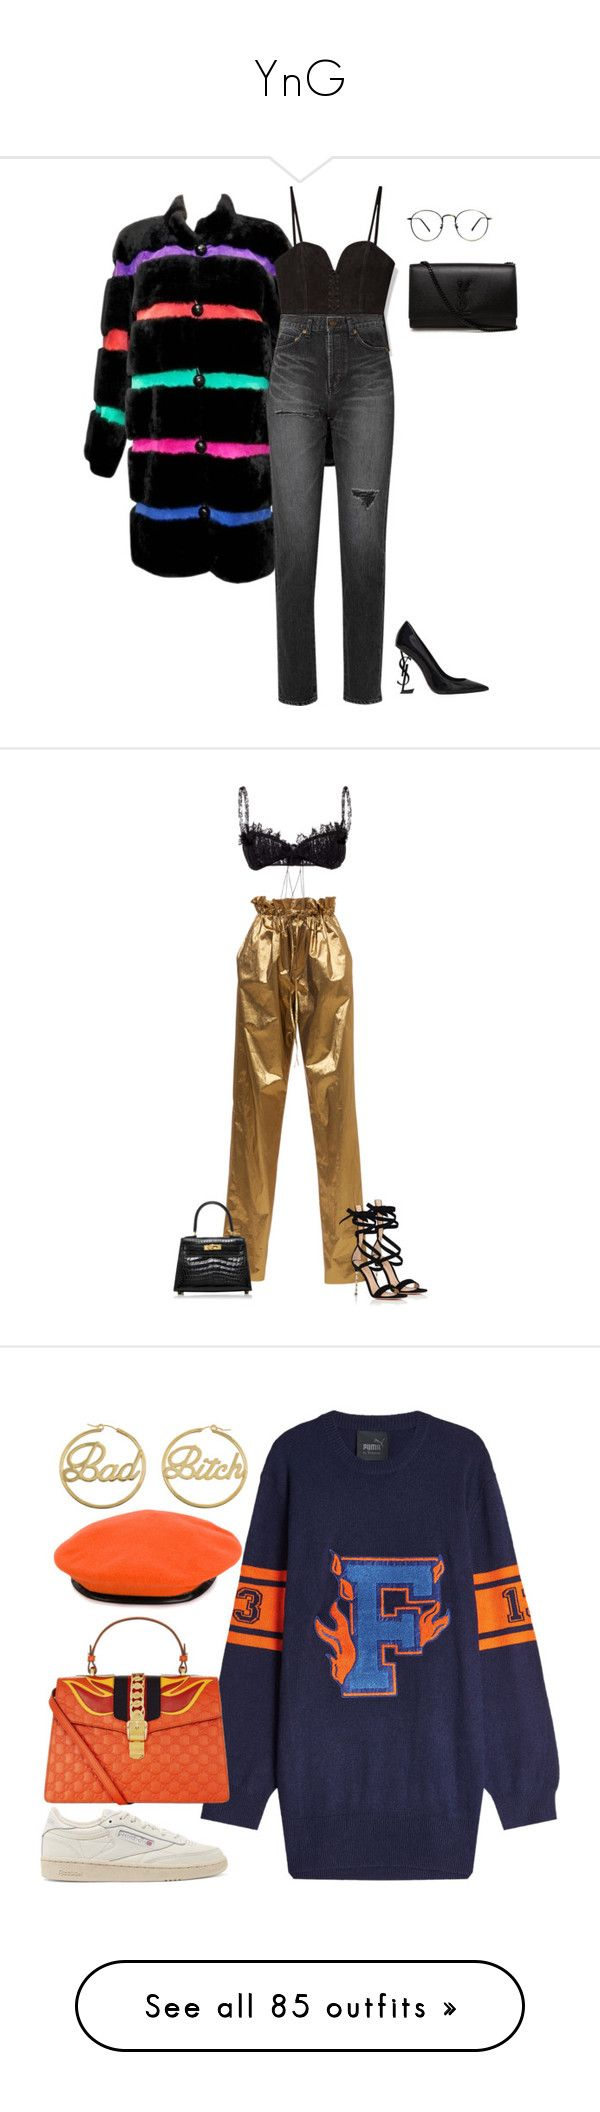 """""""YnG"""" by ajd2 ❤ liked on Polyvore featuring Yves Saint Laurent, Sally Lapointe, Brock Collection, Hermès, Gianvito Rossi, Puma, Gucci, Reebok, me you and Gosha Rubchinskiy"""